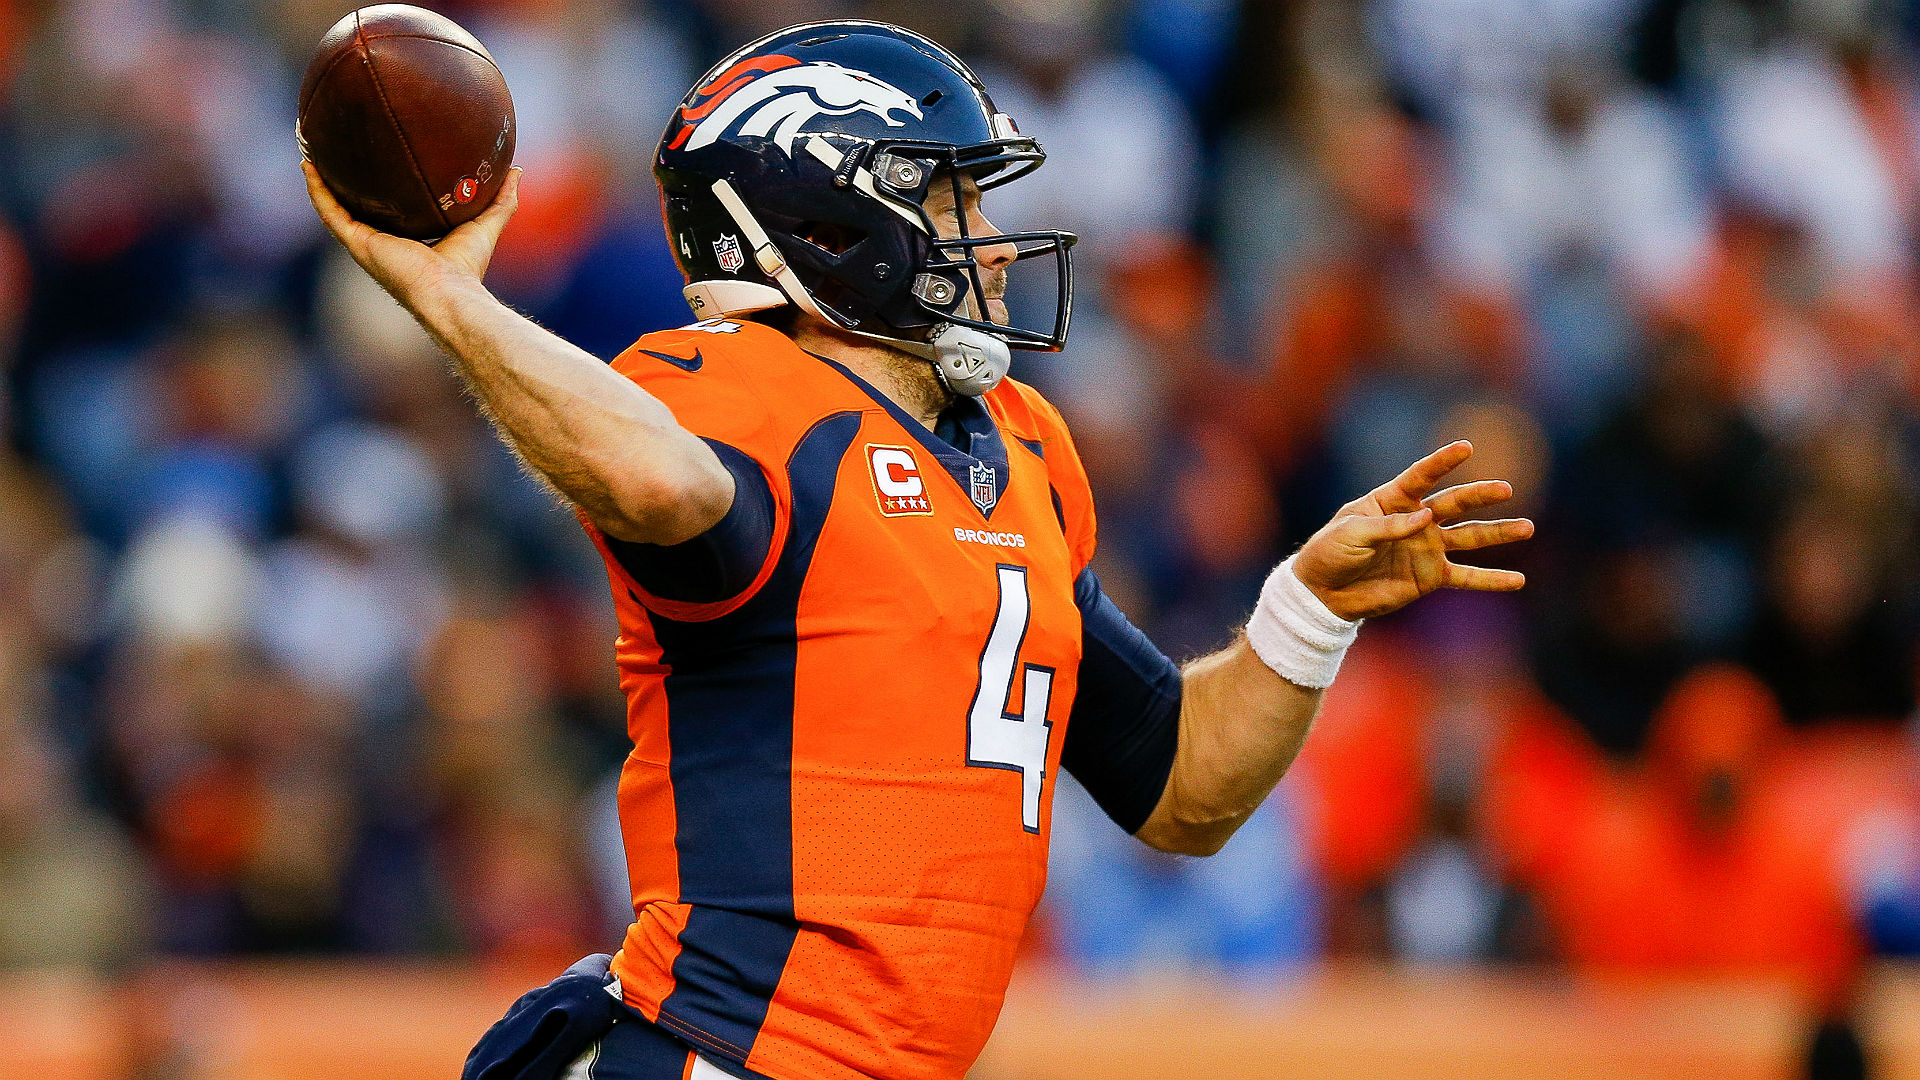 Case Keenum trade details: Redskins acquire QB for pick, half salary